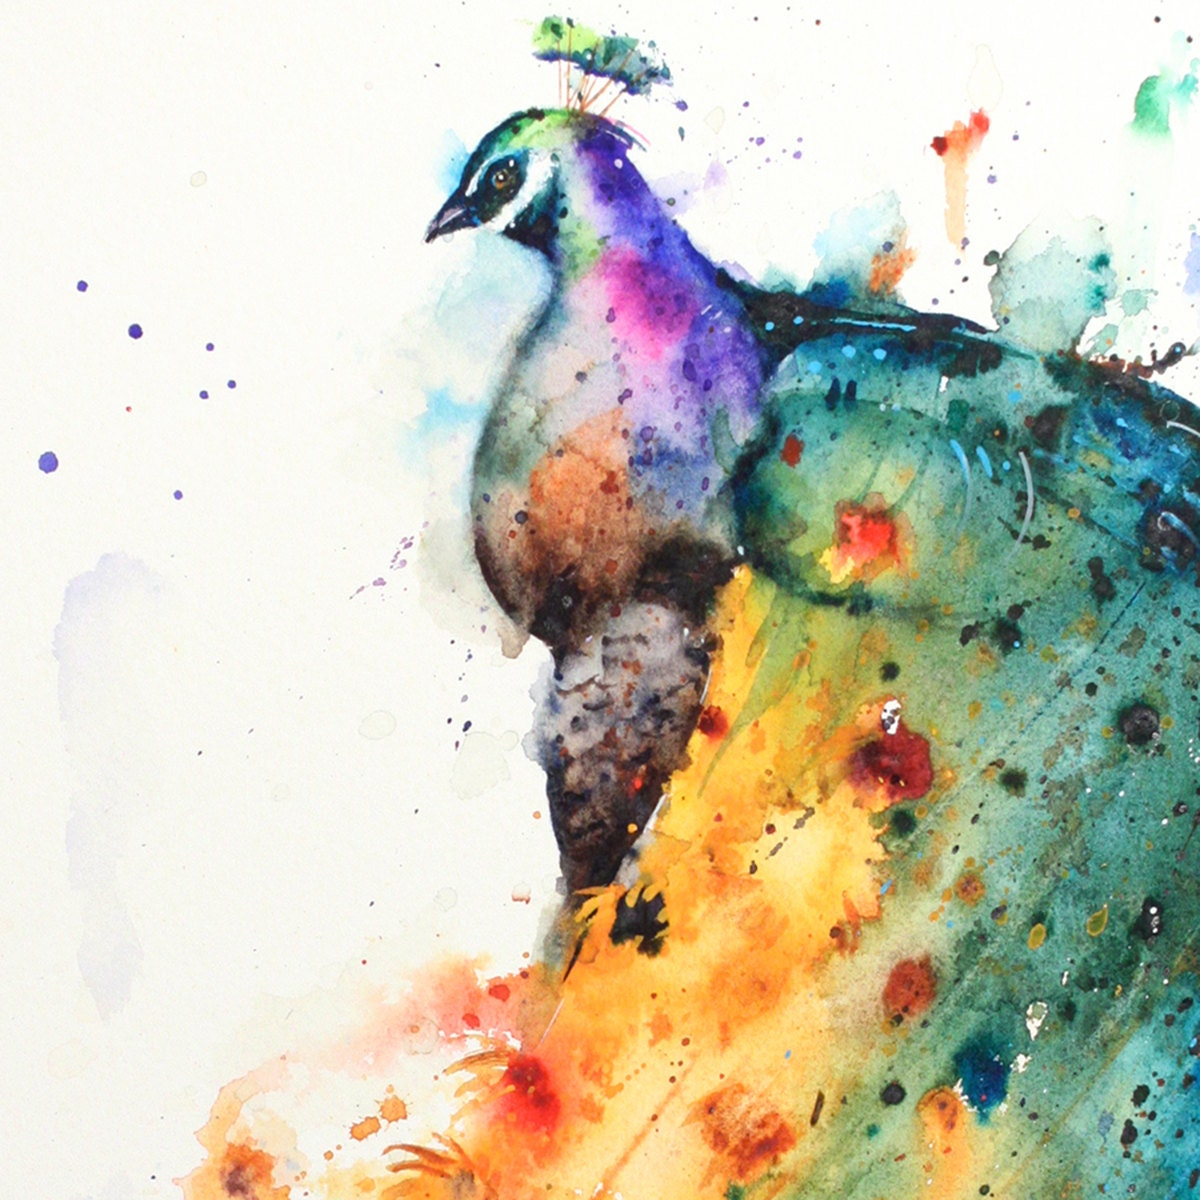 SUNFLOWER PEACOCK Watercolor Print by Dean by DeanCrouserArt